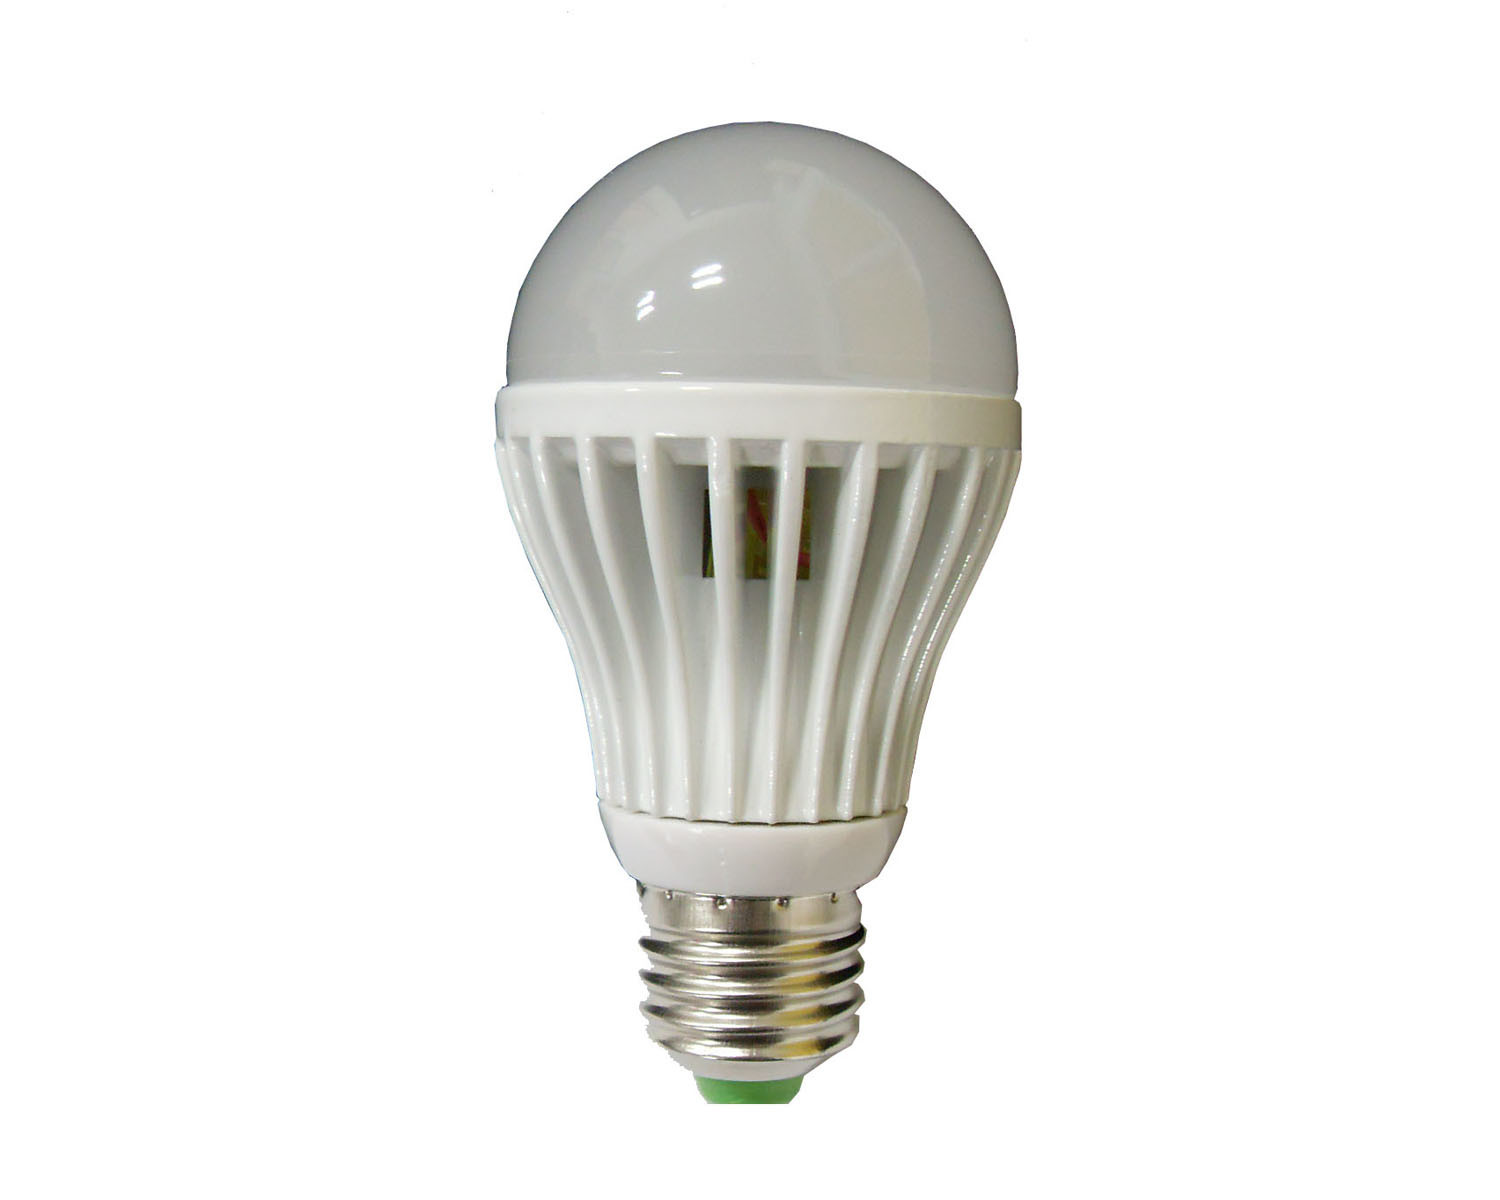 china led bulb light 9w 800lm china led bulbs lamp led bulb light